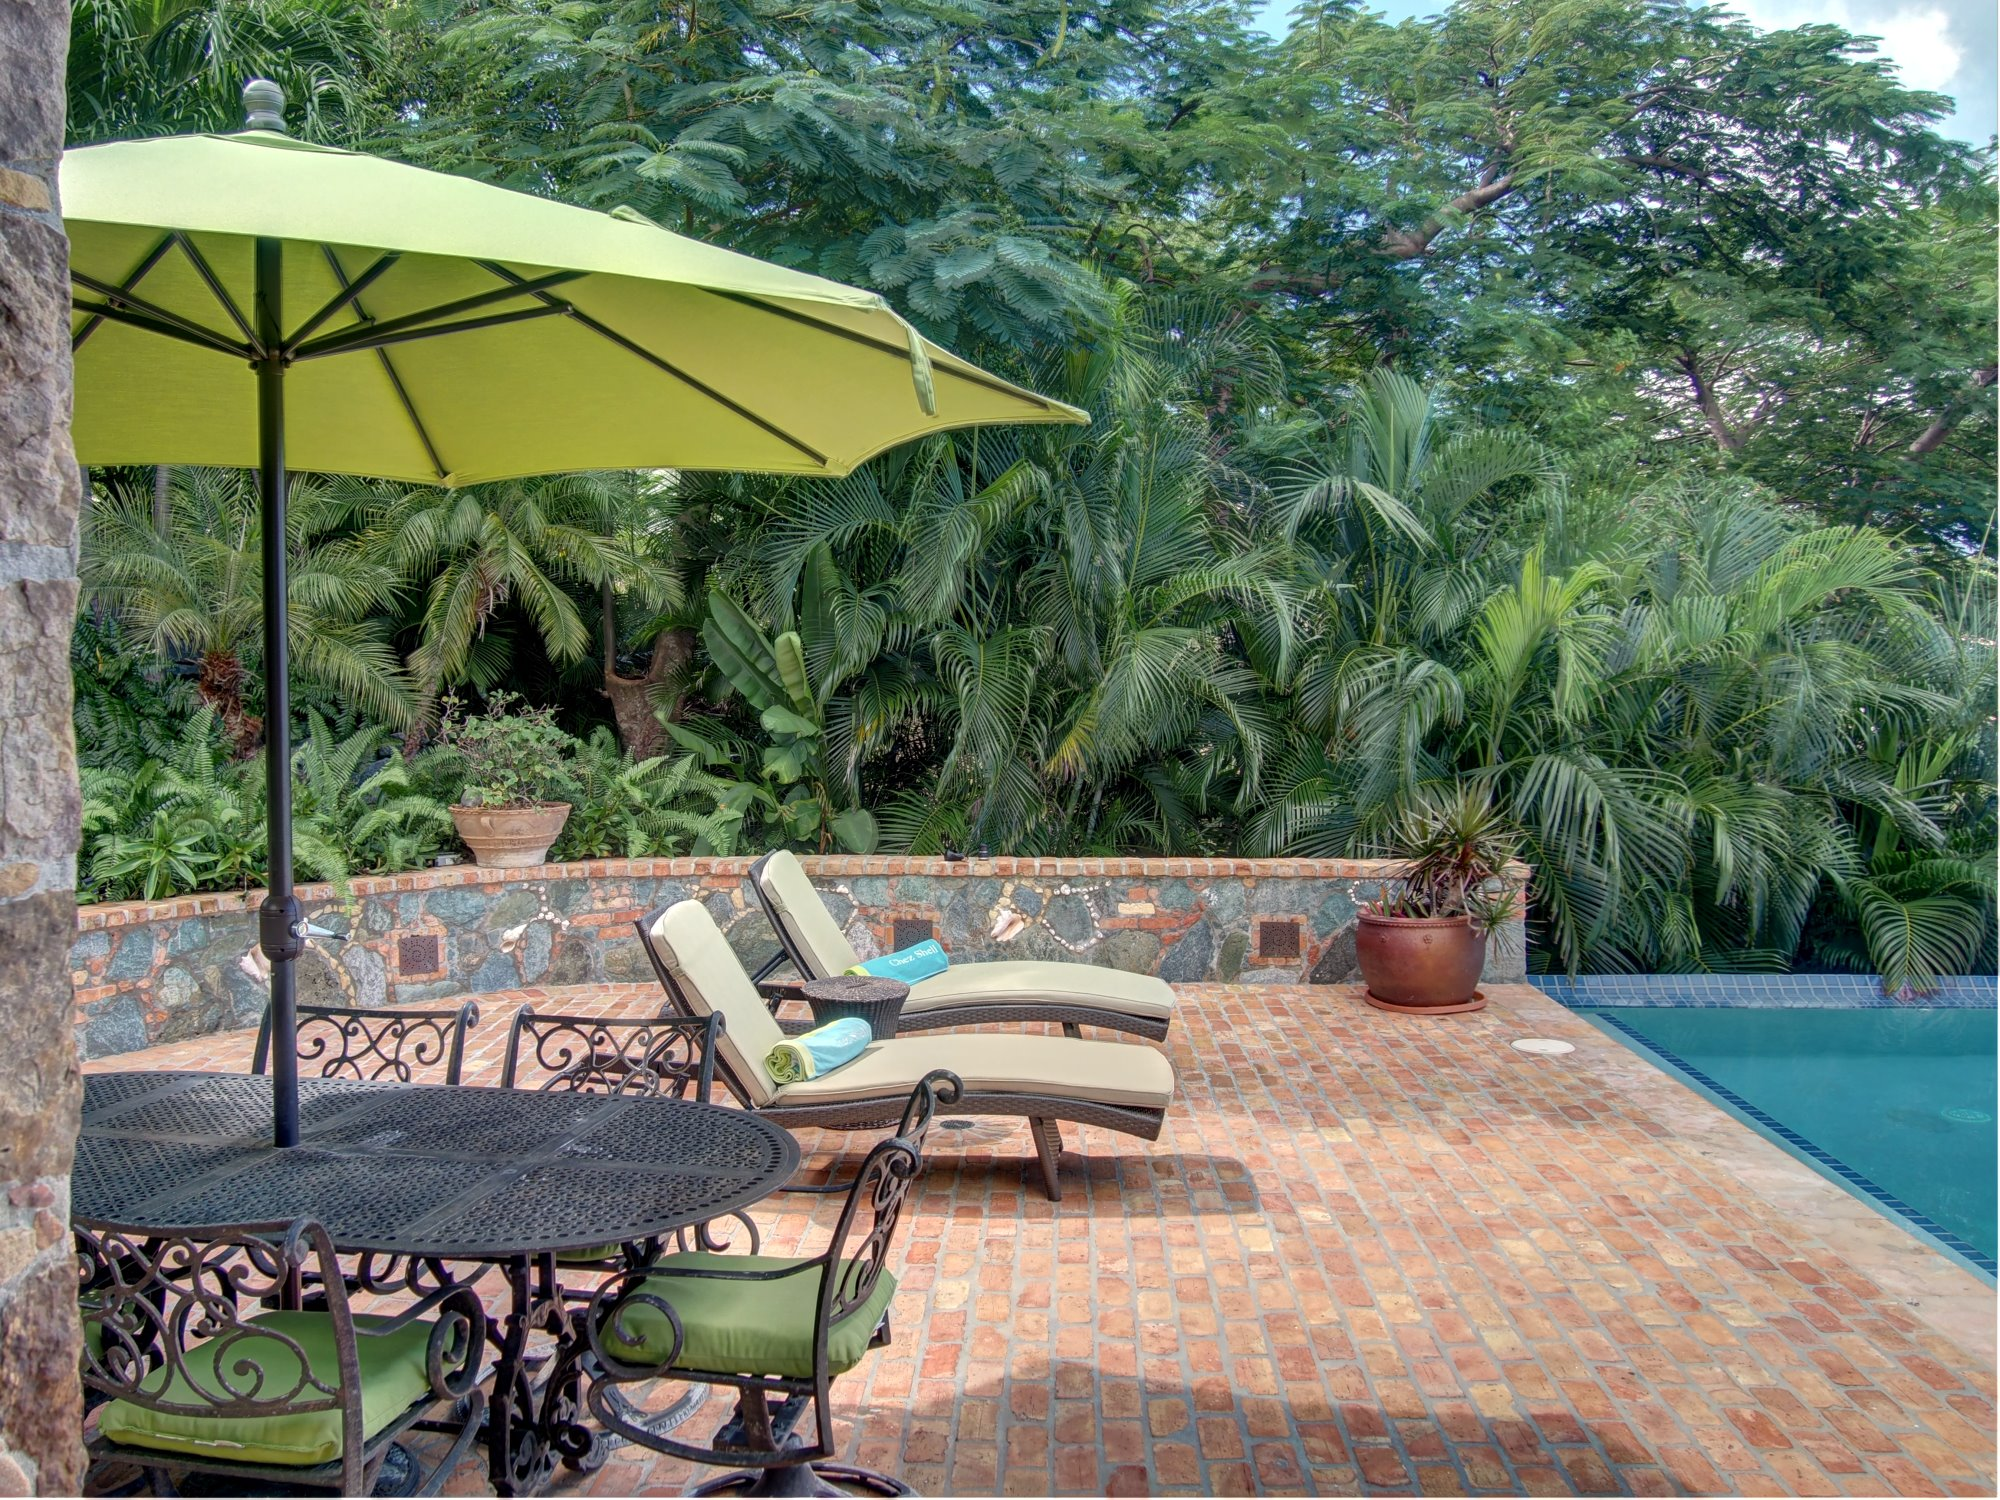 Enjoy privacy from a natural surrounding of Caribbean Vegetation